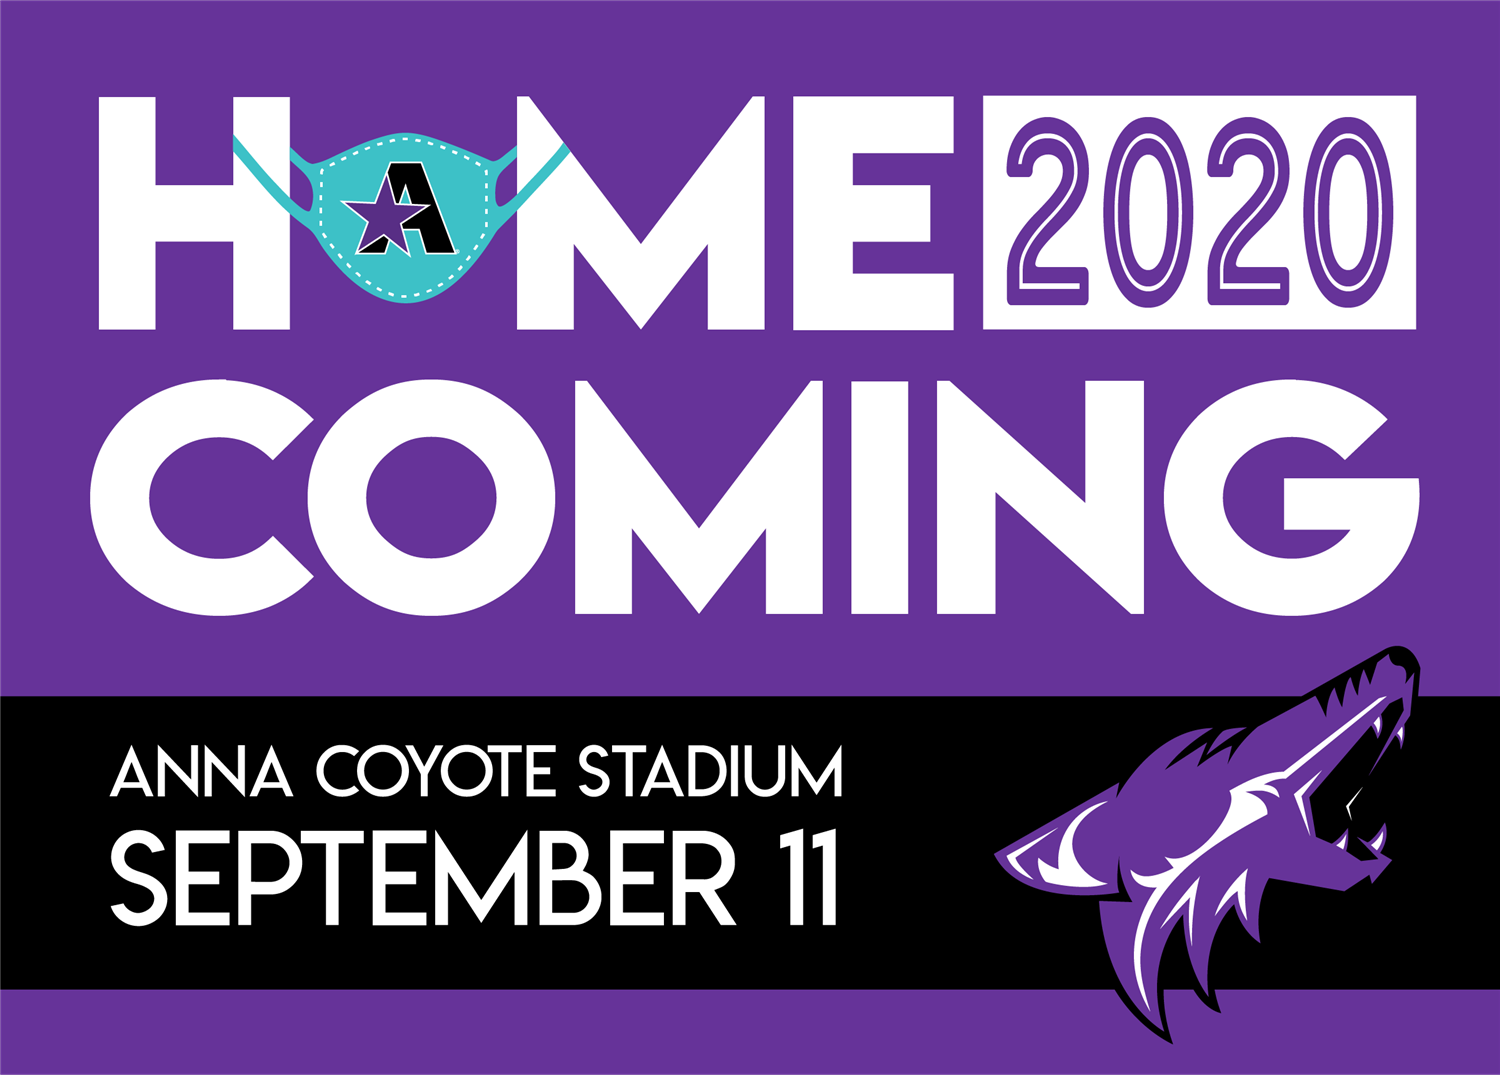 ANNA COYOTES HOMECOMING 2020 & TICKET INFORMATION